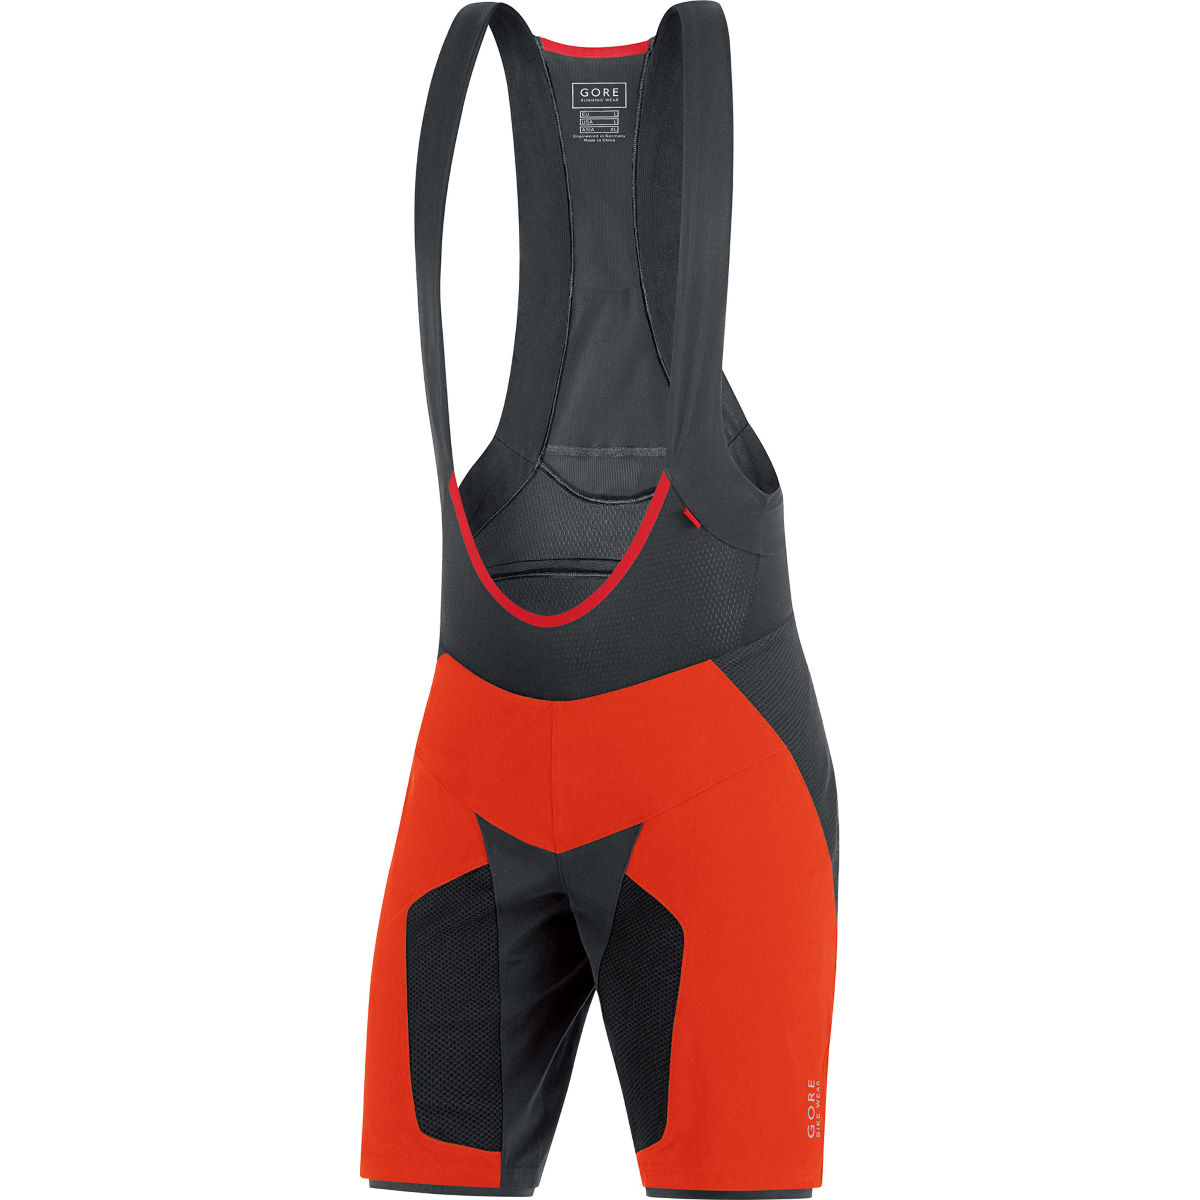 Short à bretelles Gore Bike Wear Alp-X Pro+ (2 en 1) - L Orange Cuissards en lycra